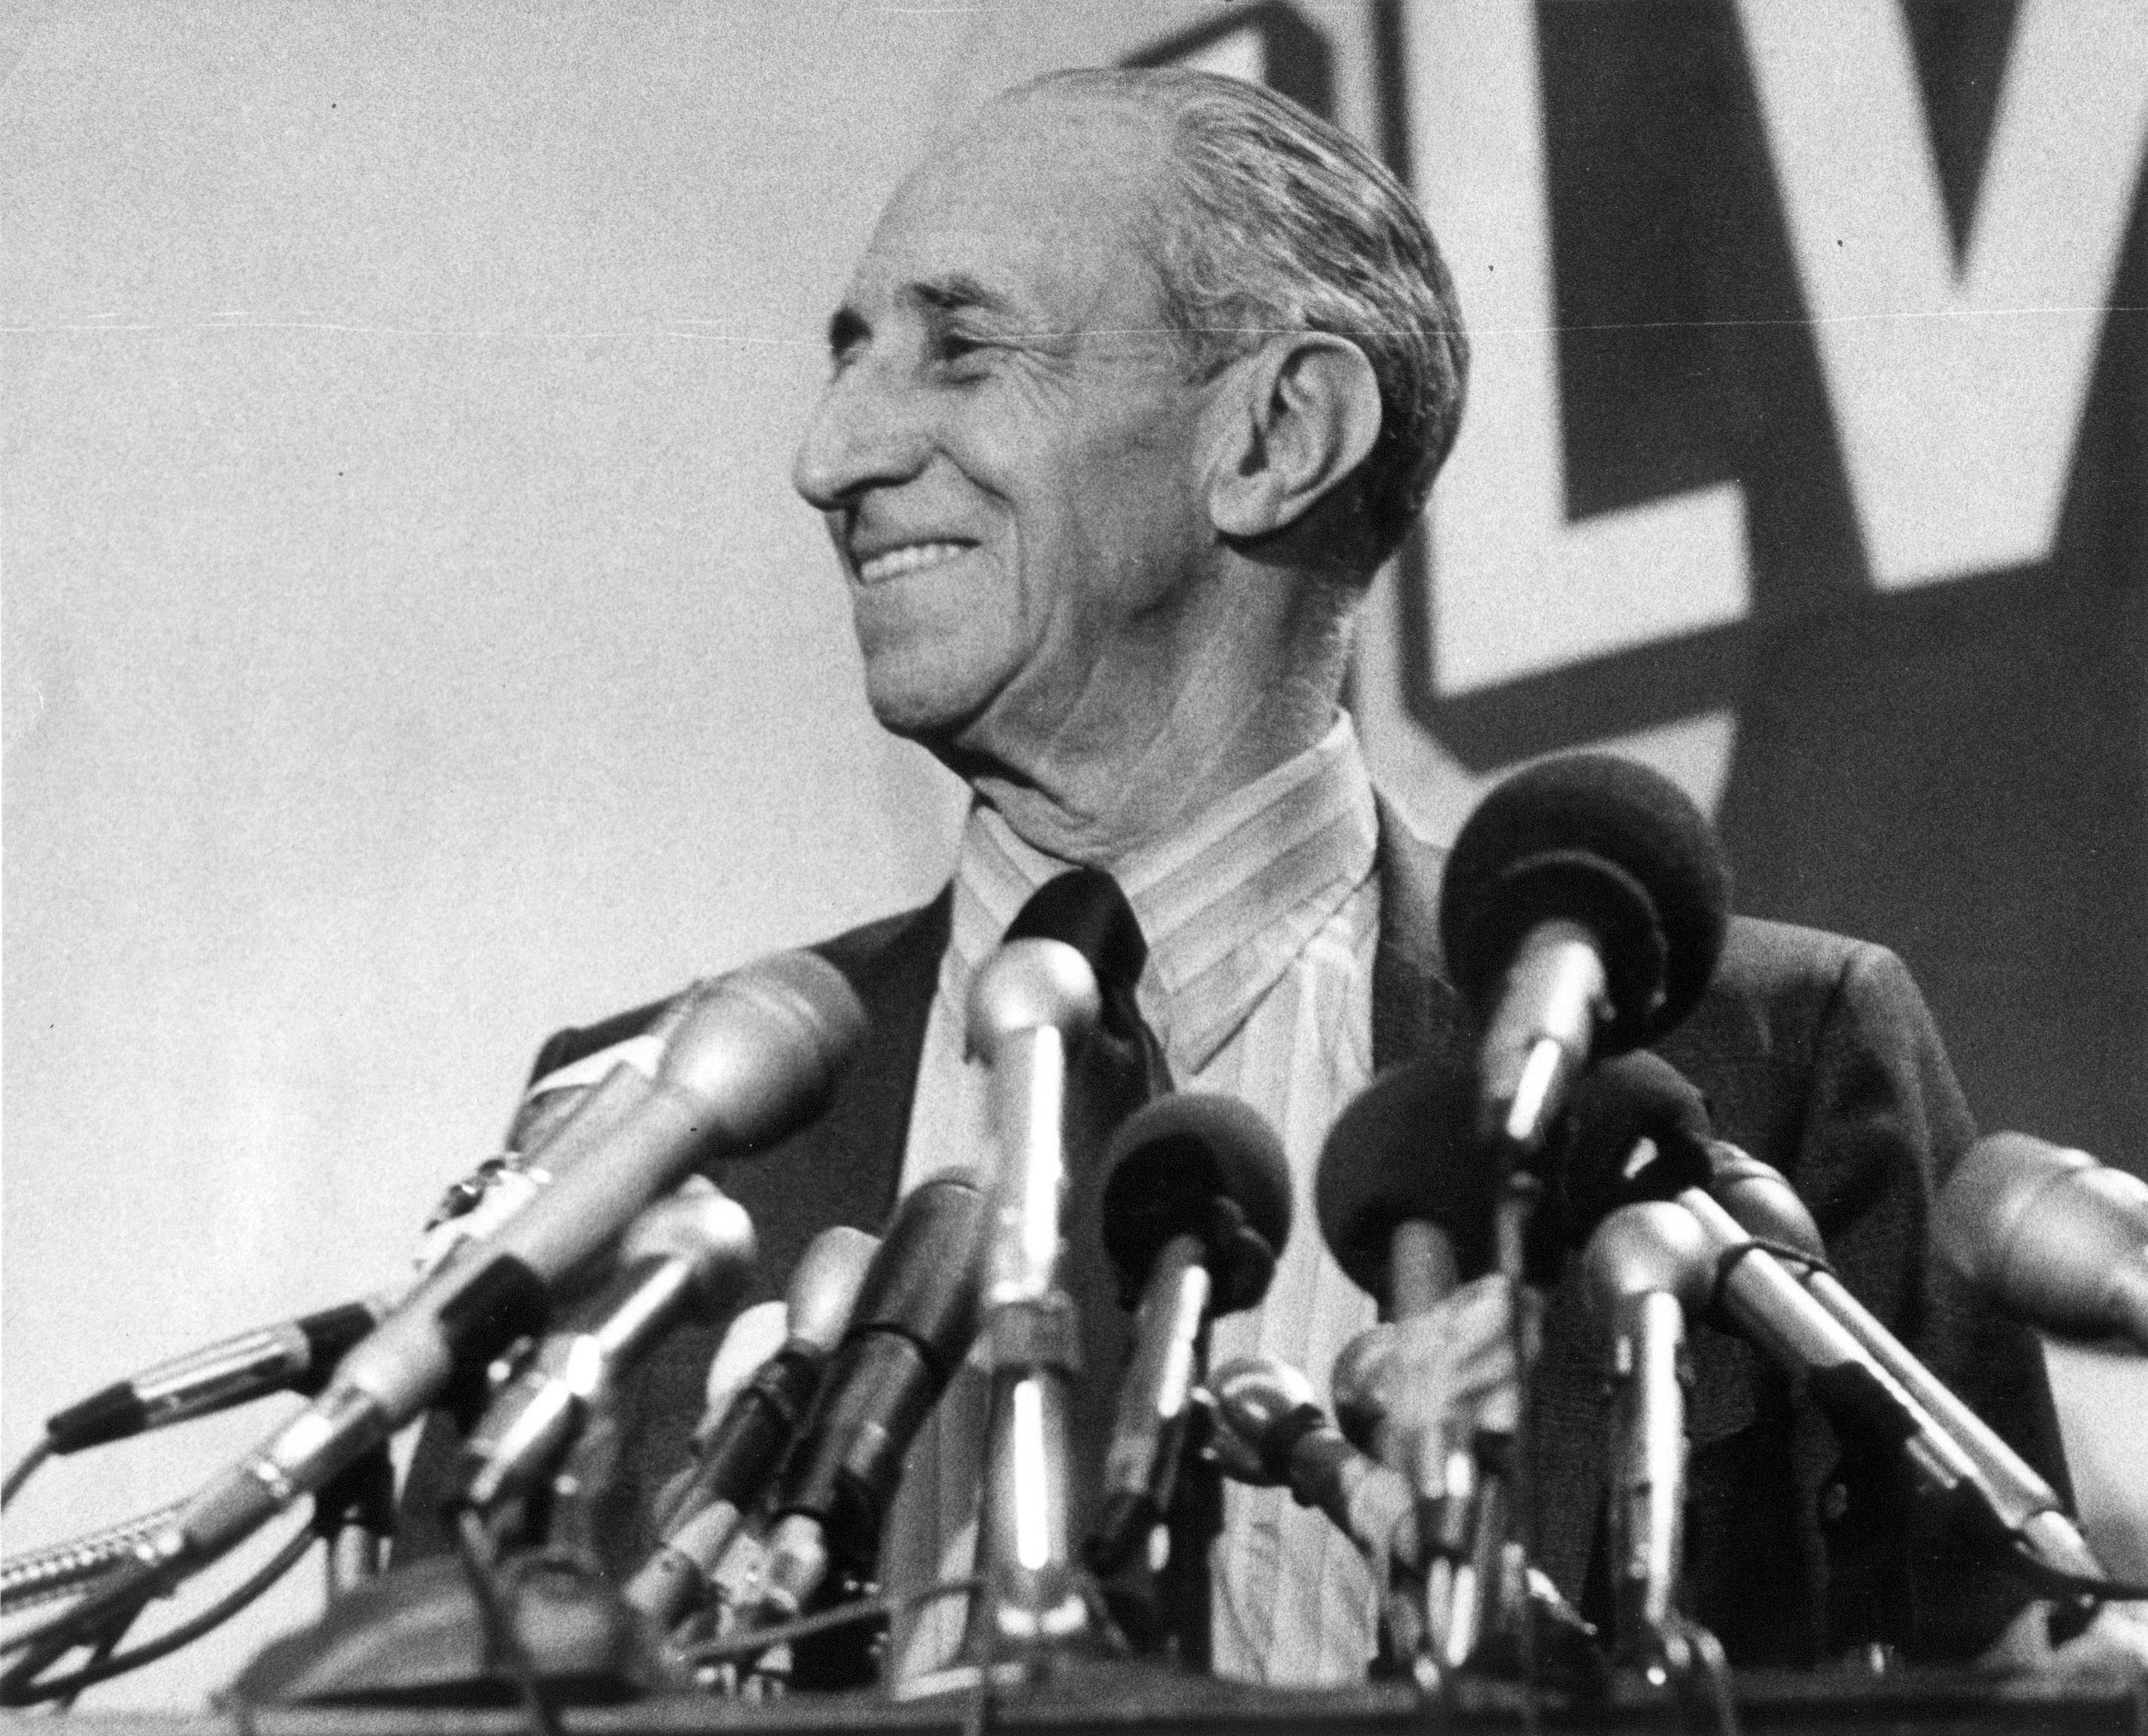 Caption: Harry Bridges at 1971 Press Conference